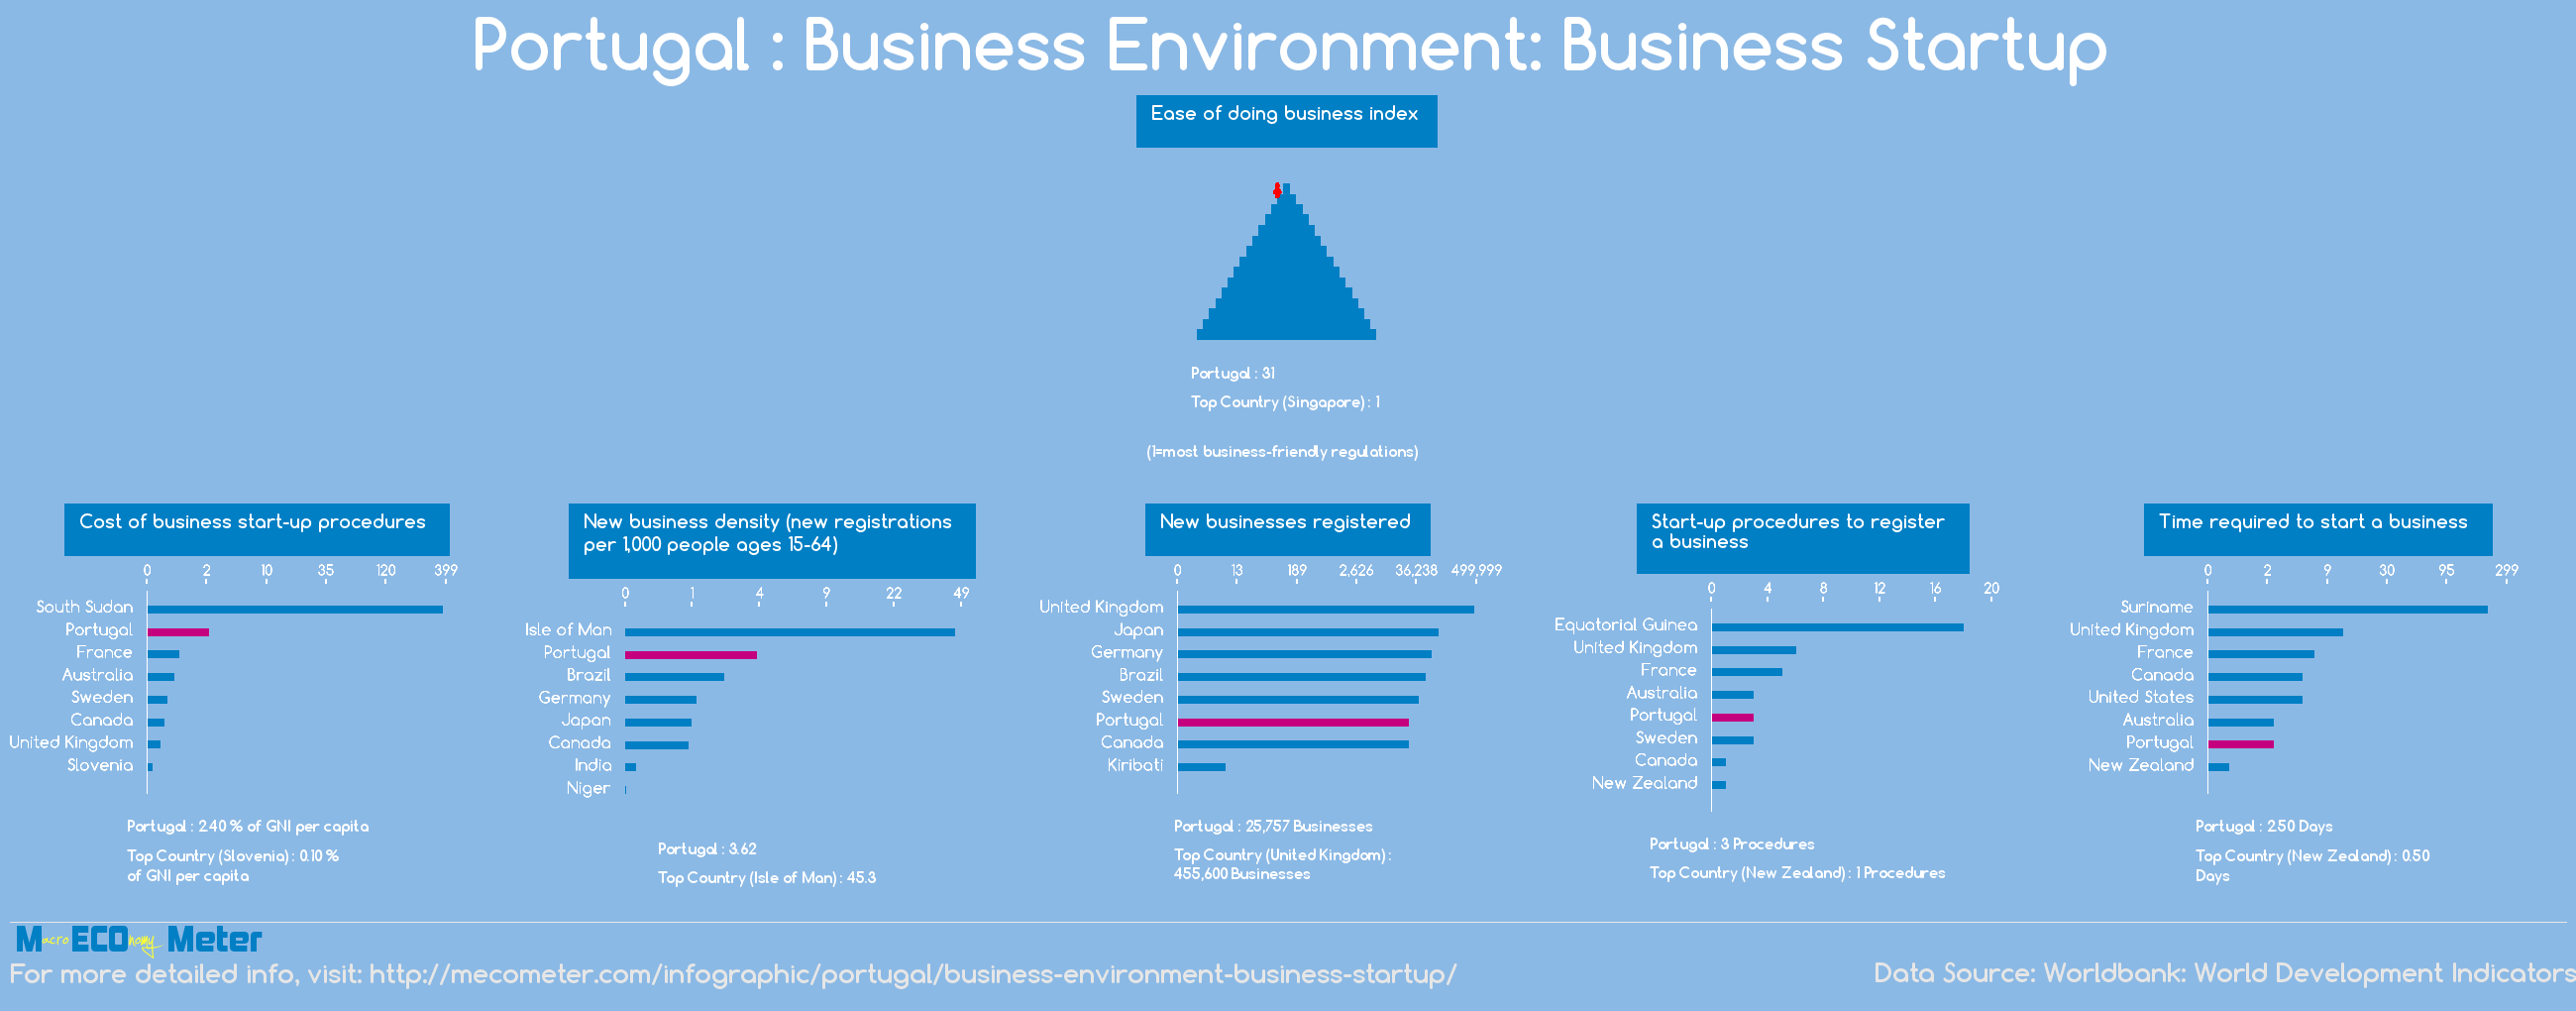 Portugal : Business Environment: Business Startup